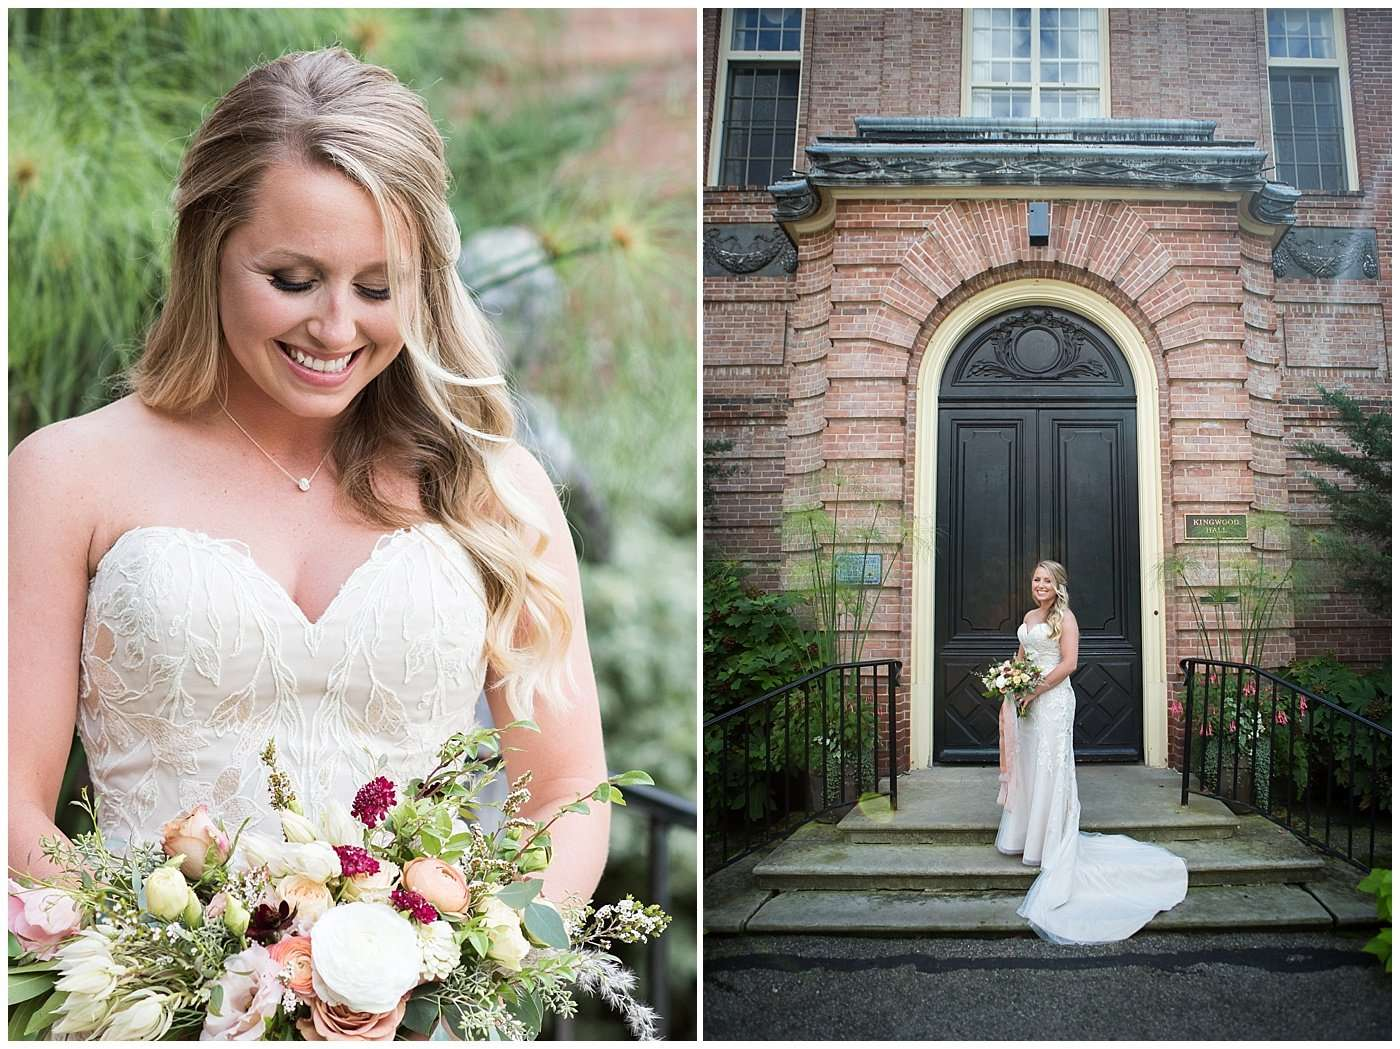 Jake & Abbie | A Swoon-Worthy Wedding at Breathtaking Garden Estate 50